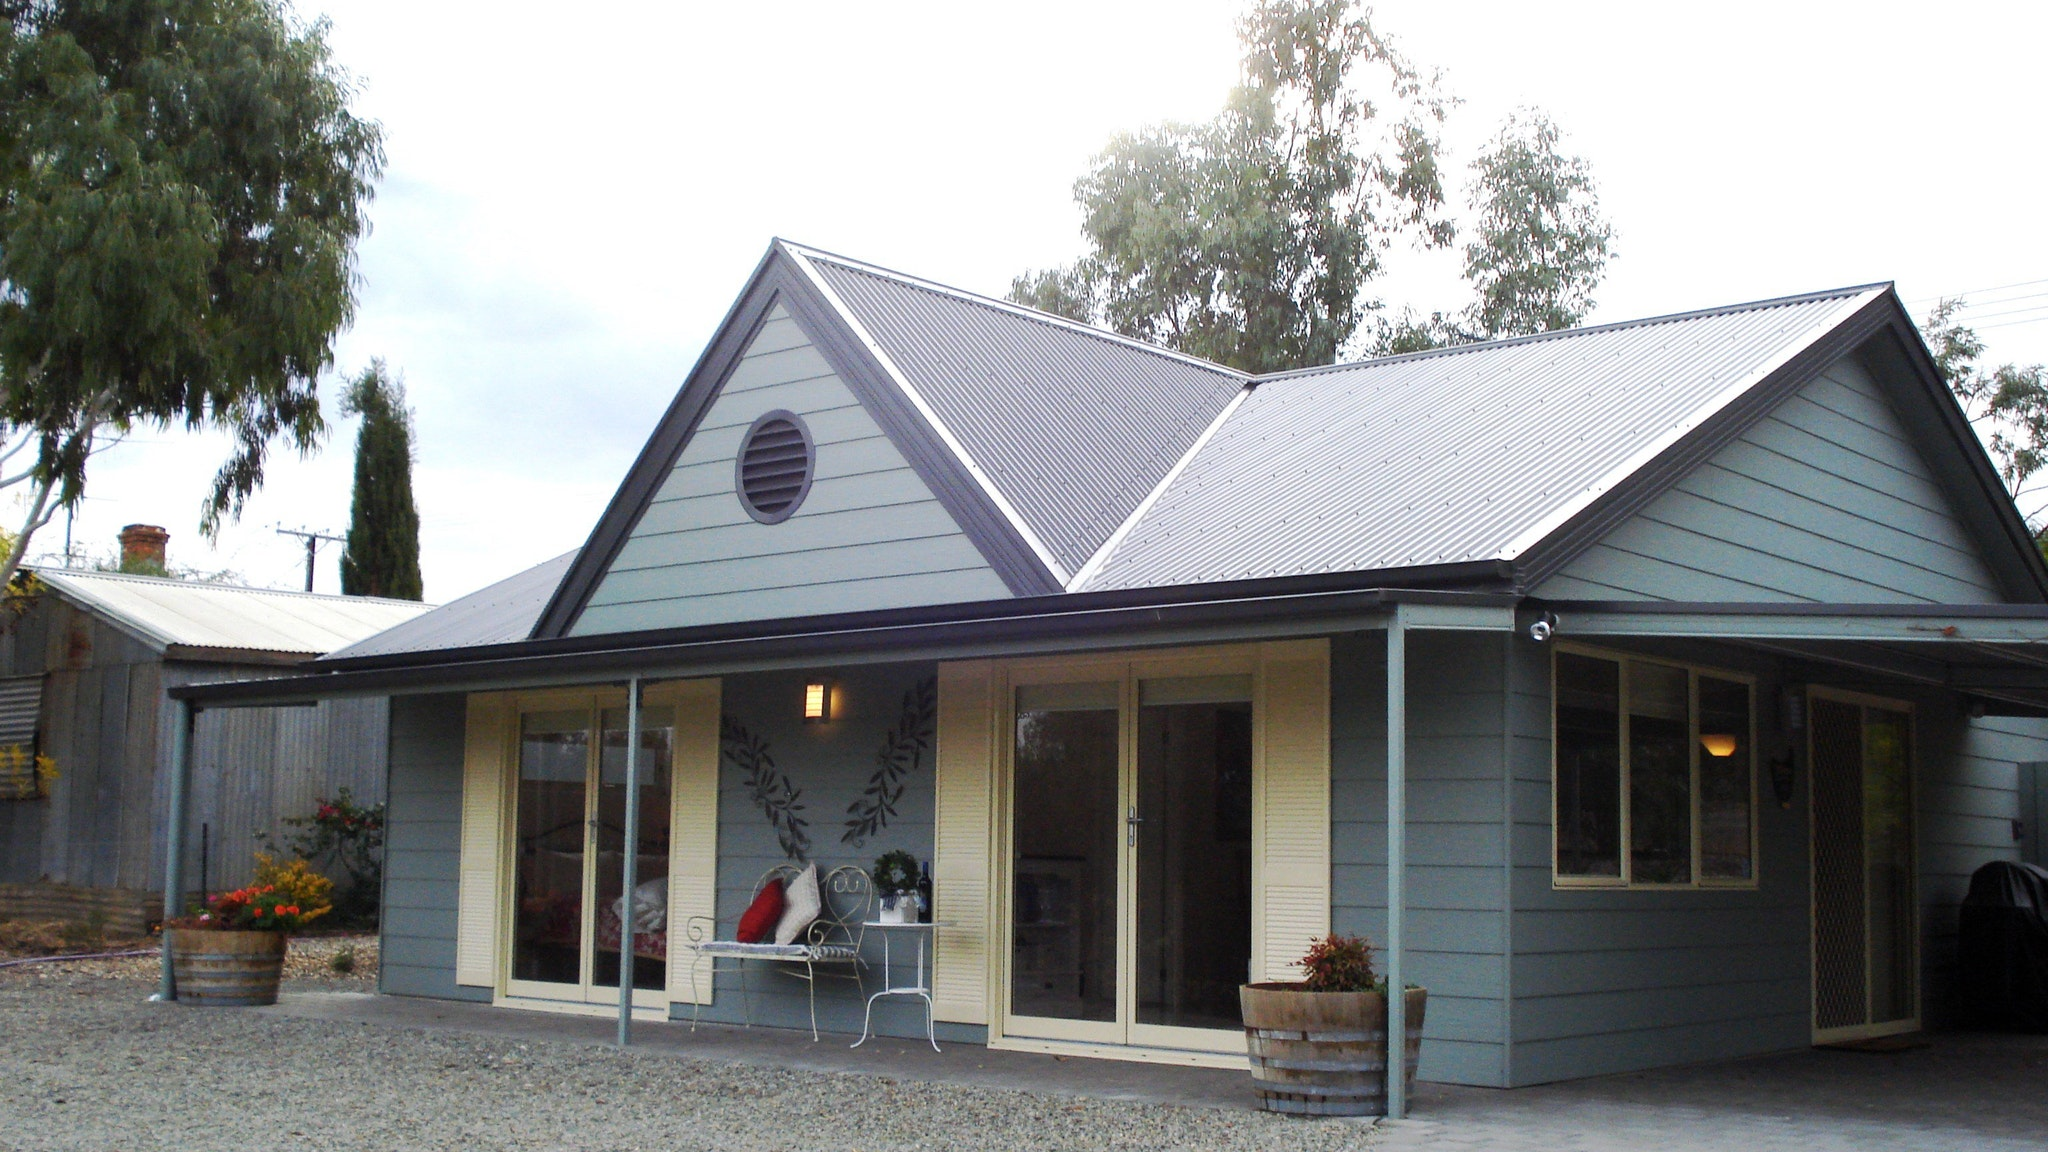 Auburn Pavilions - Yarra Valley Accommodation